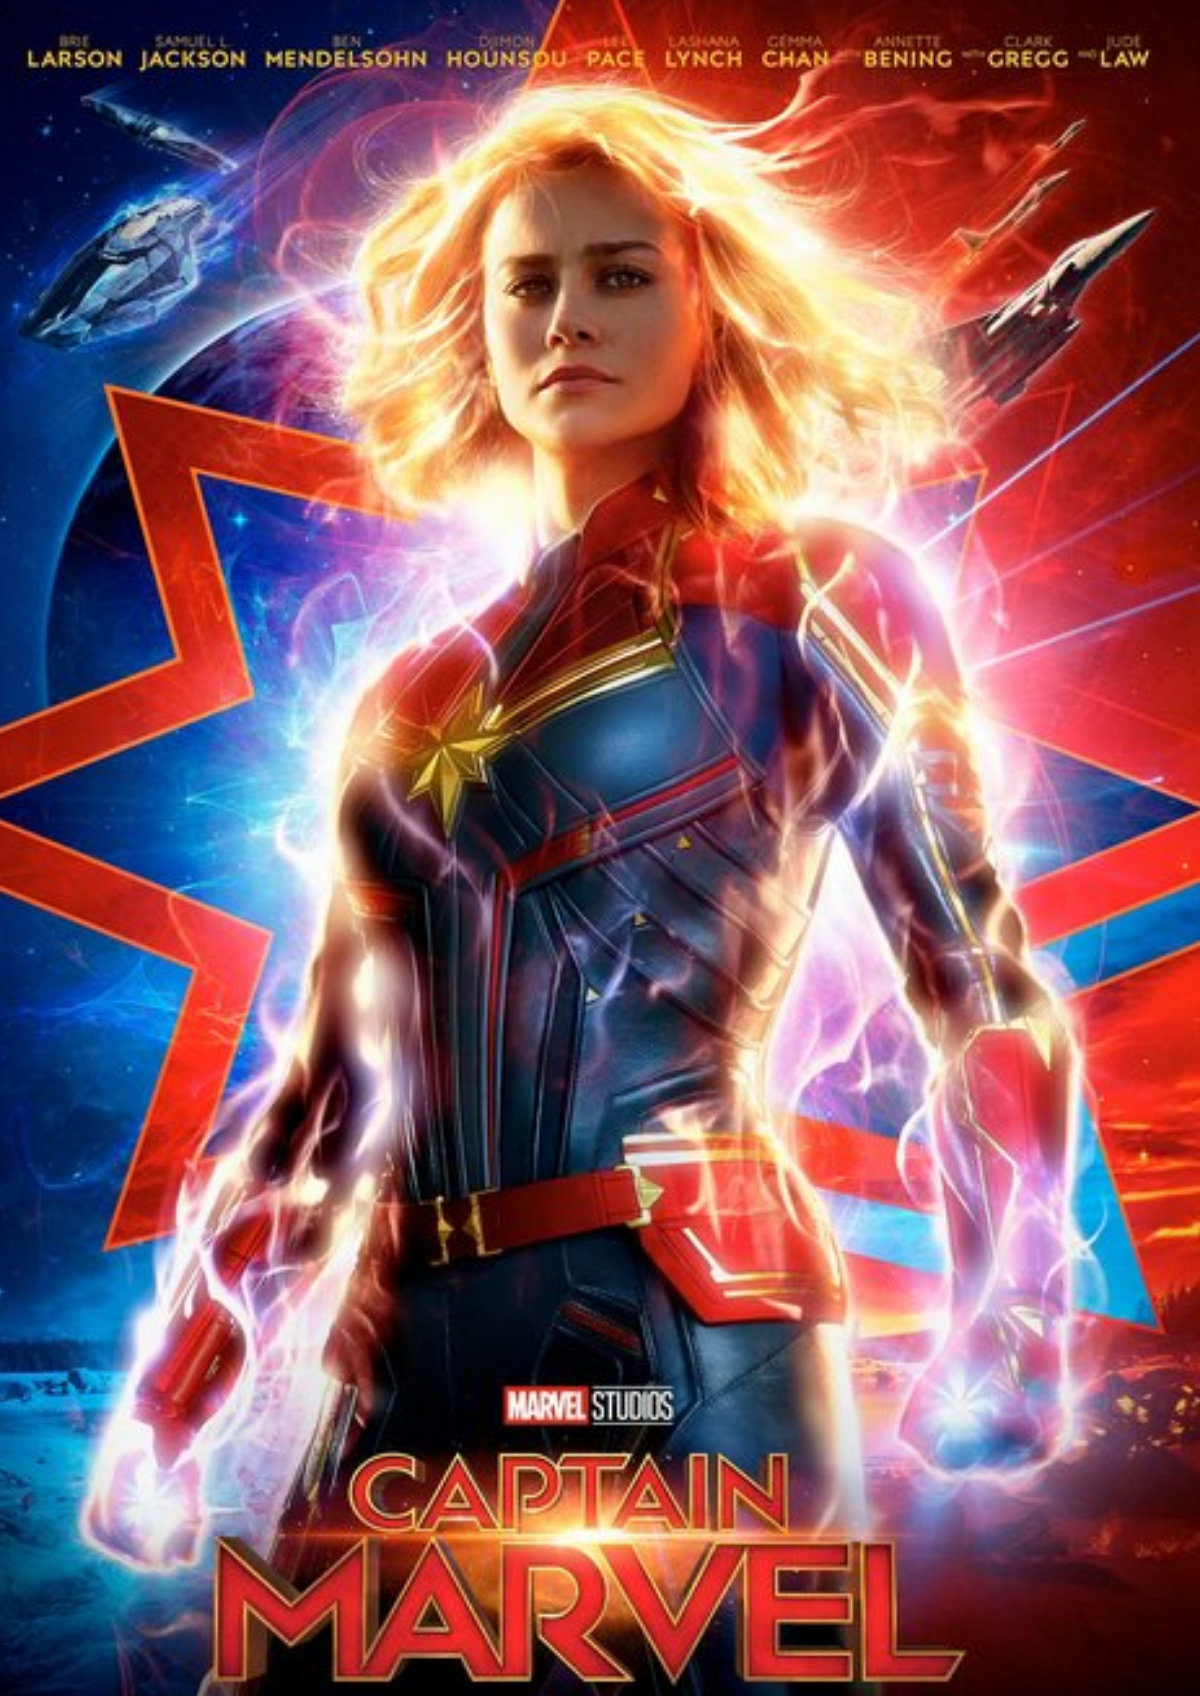 'Captain Marvel' movie poster